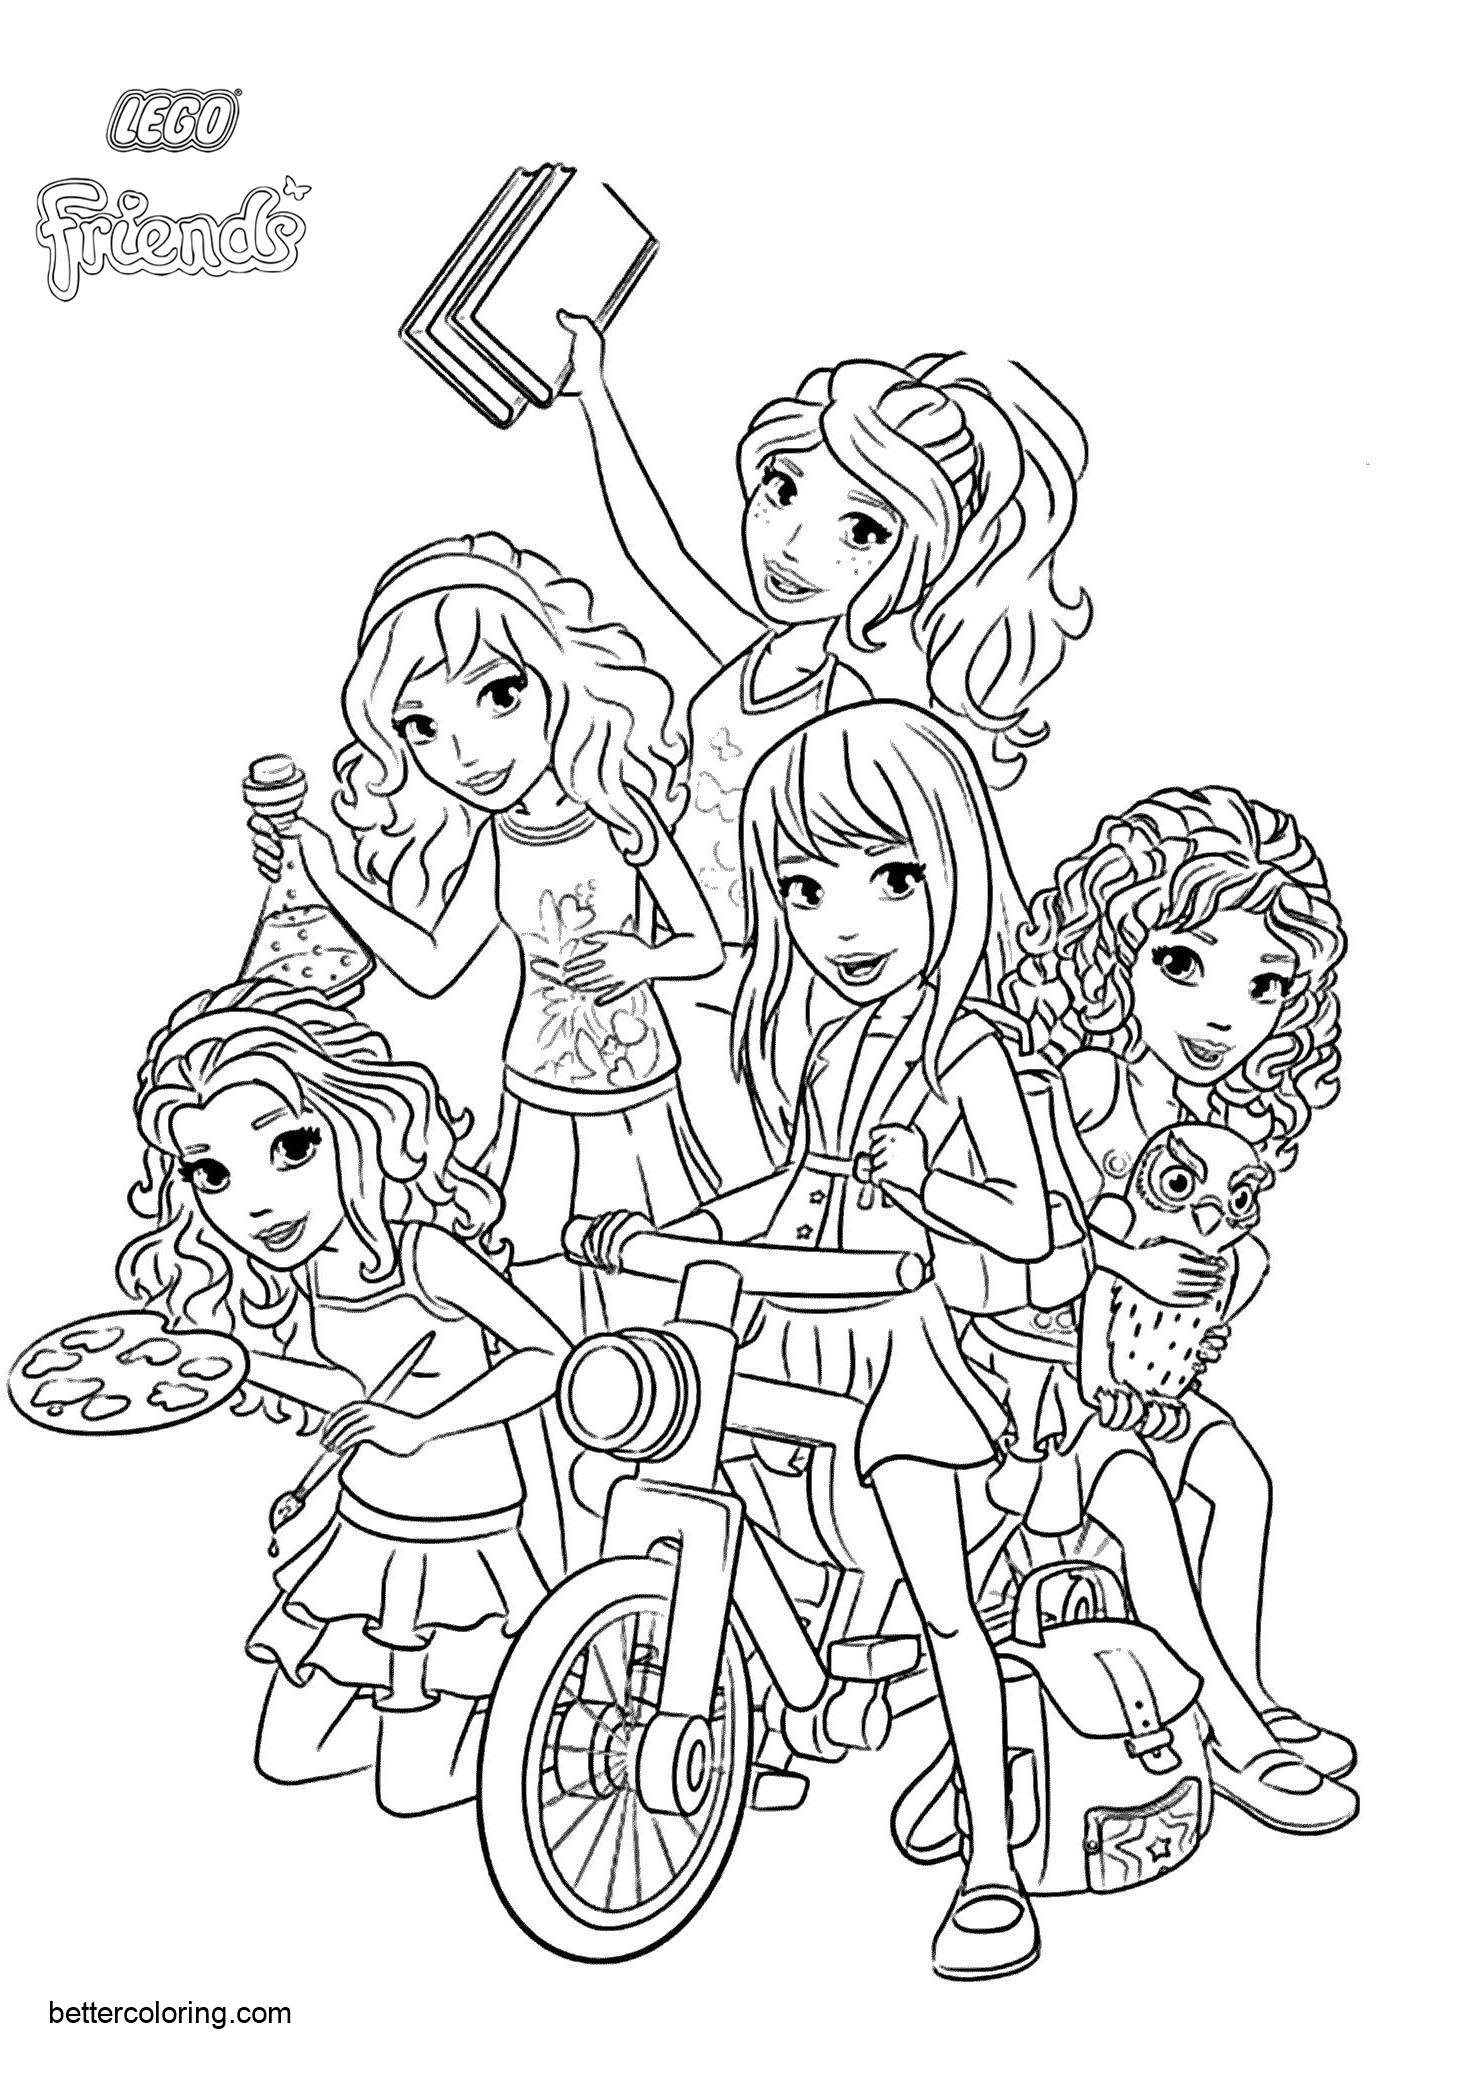 LEGO Friends Characters Coloring Pages - Free Printable Coloring Pages